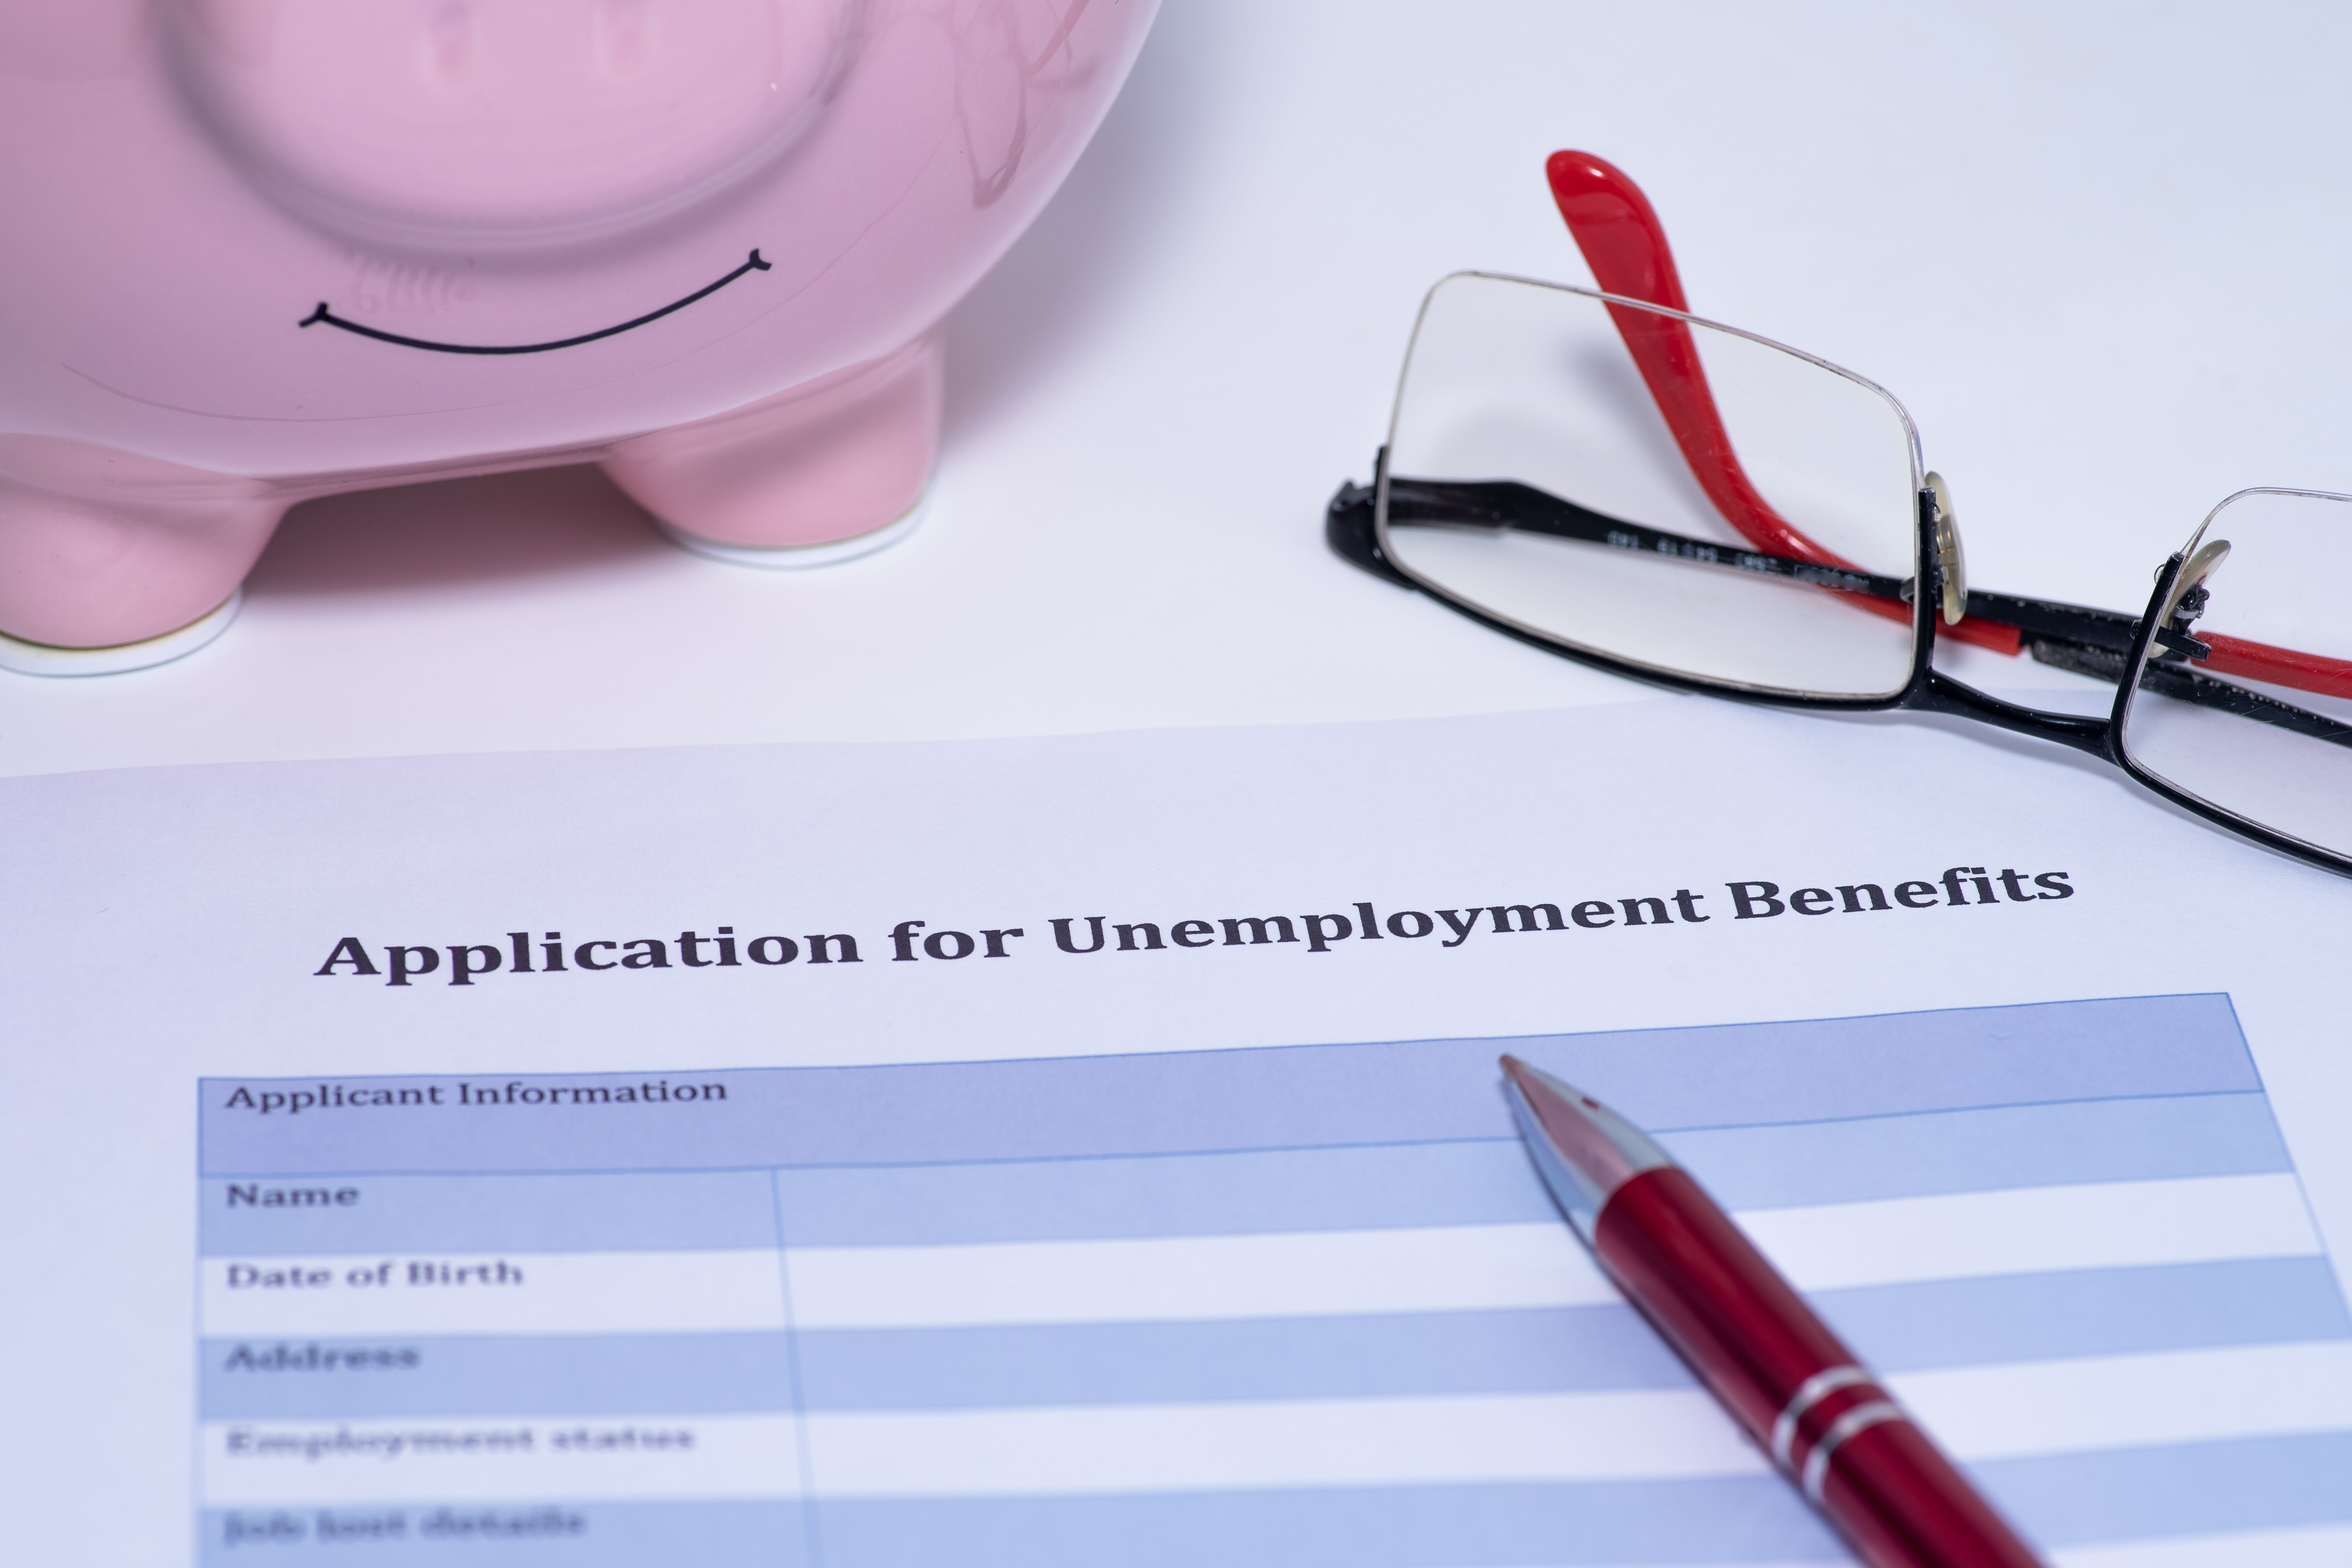 An empty application for unemployment benefits